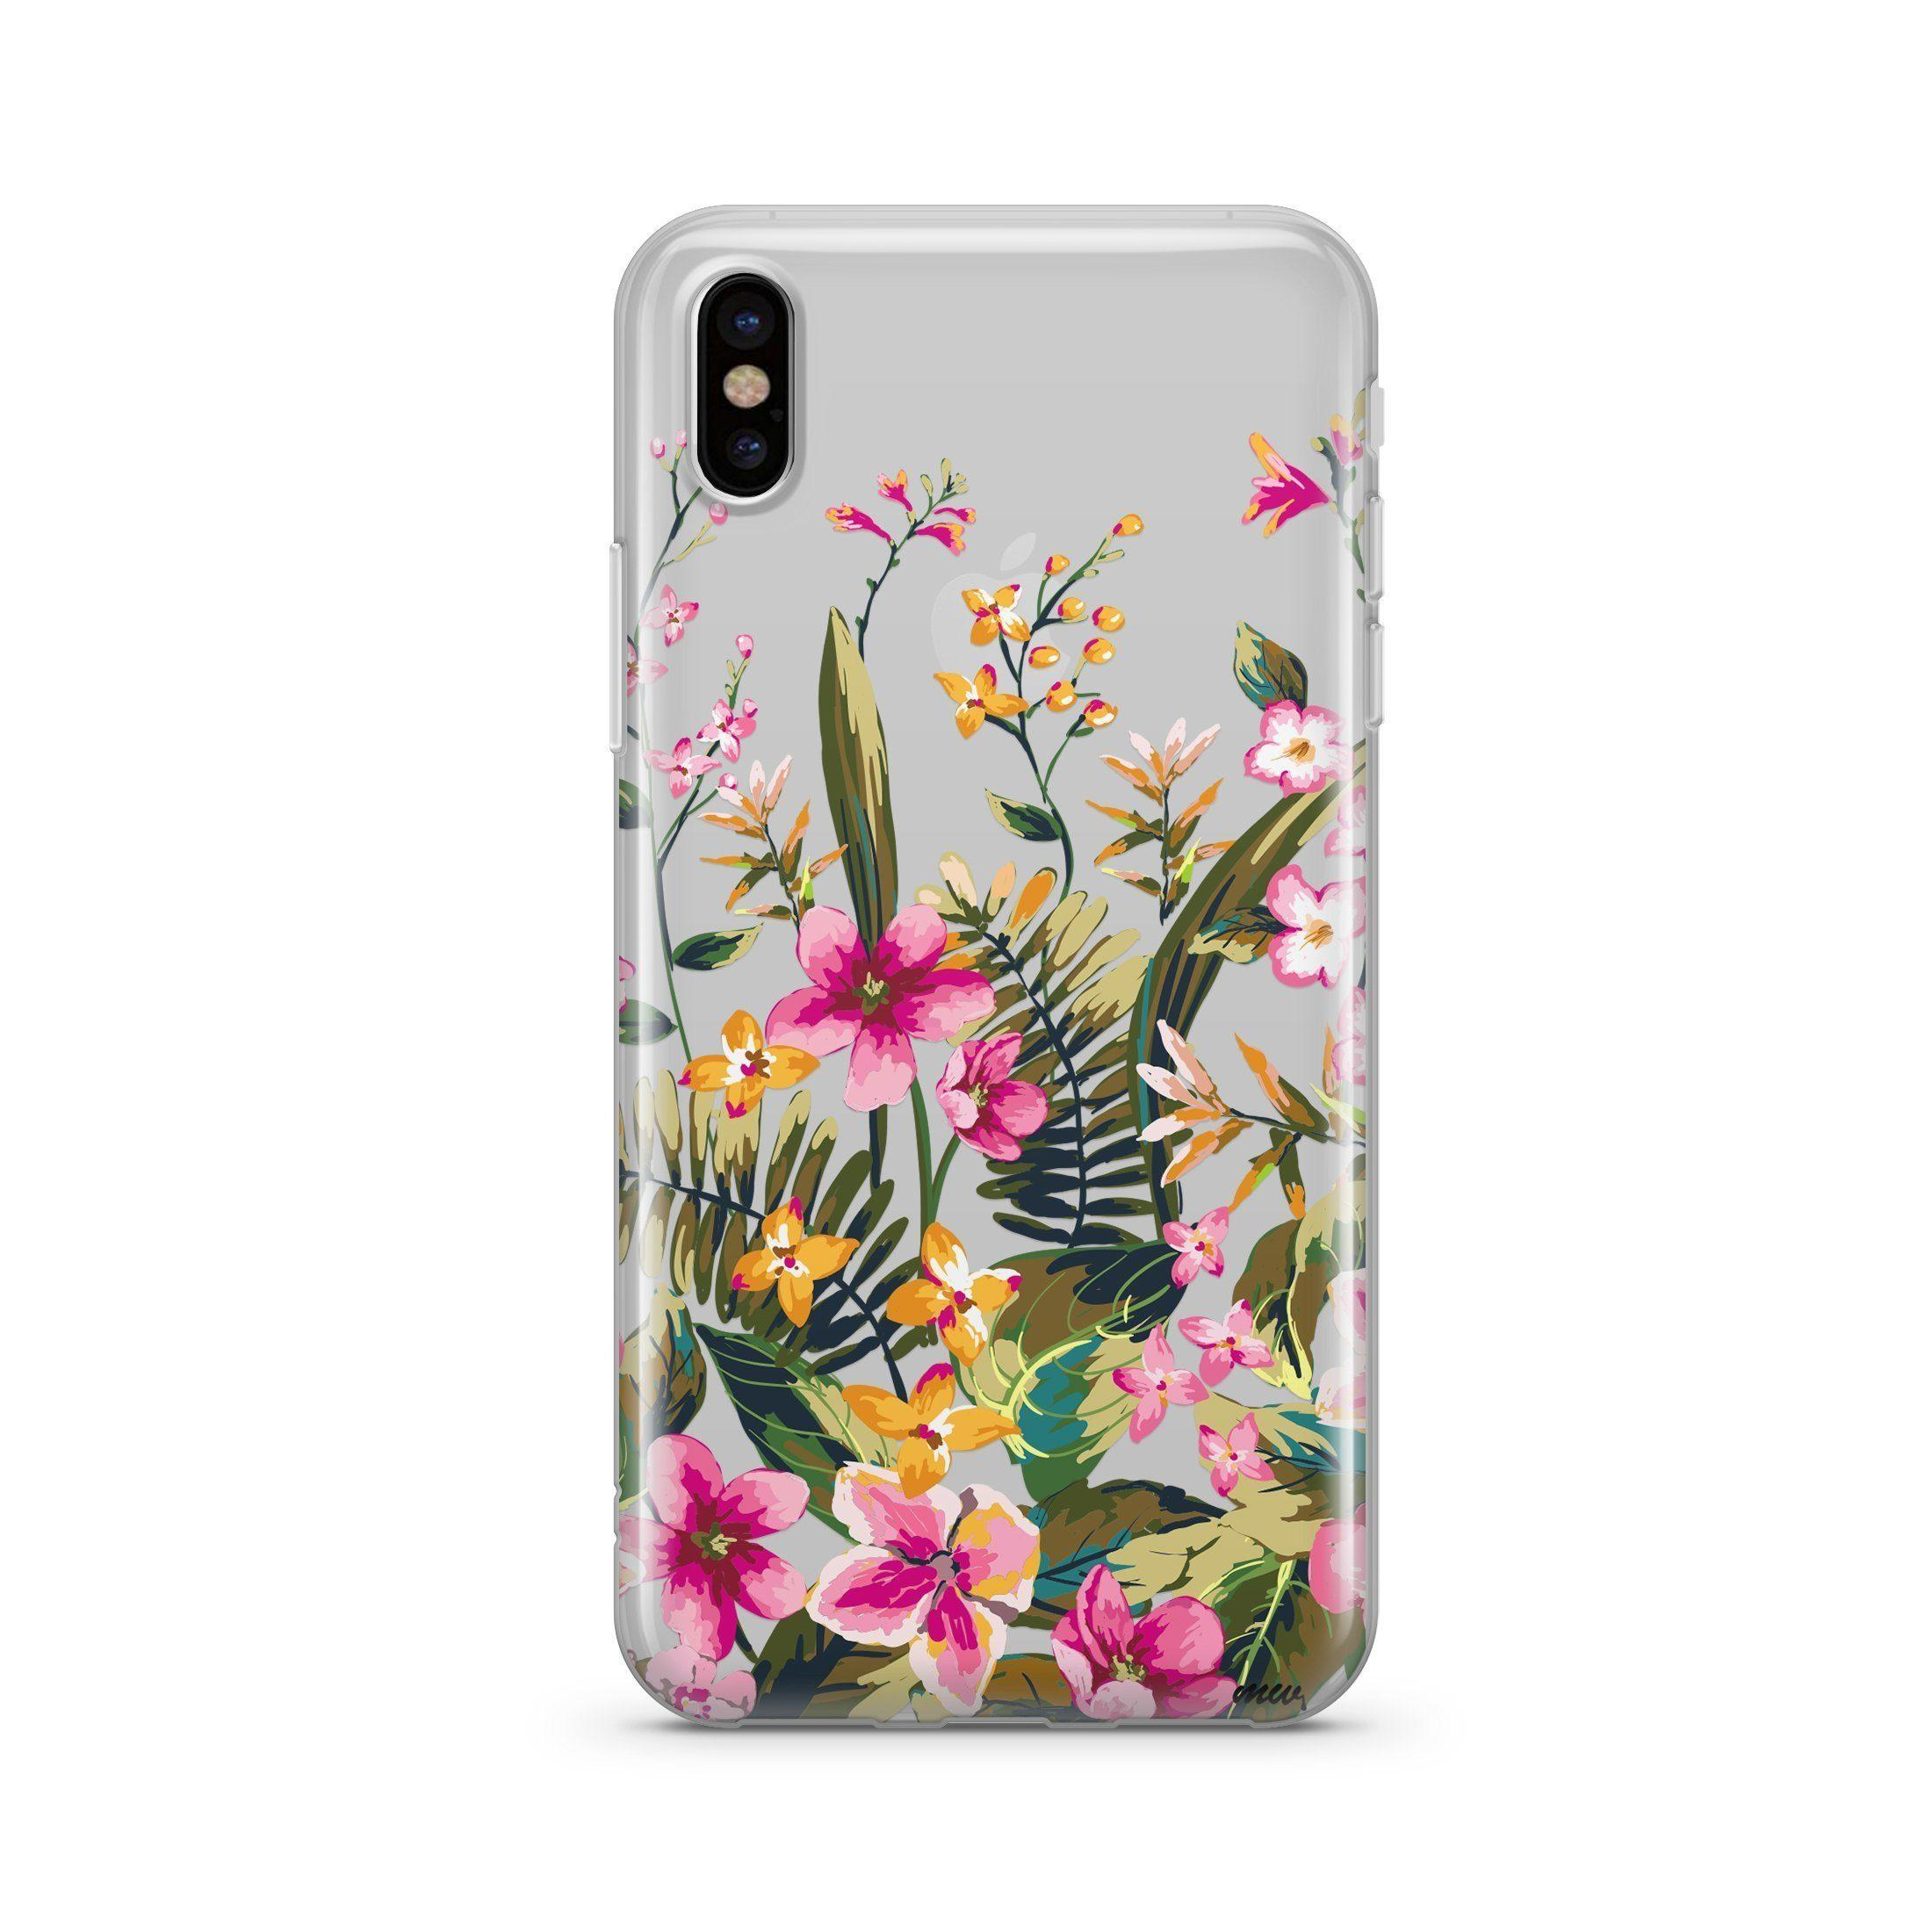 Image of Growing Garden - Clear TPU Case Cover